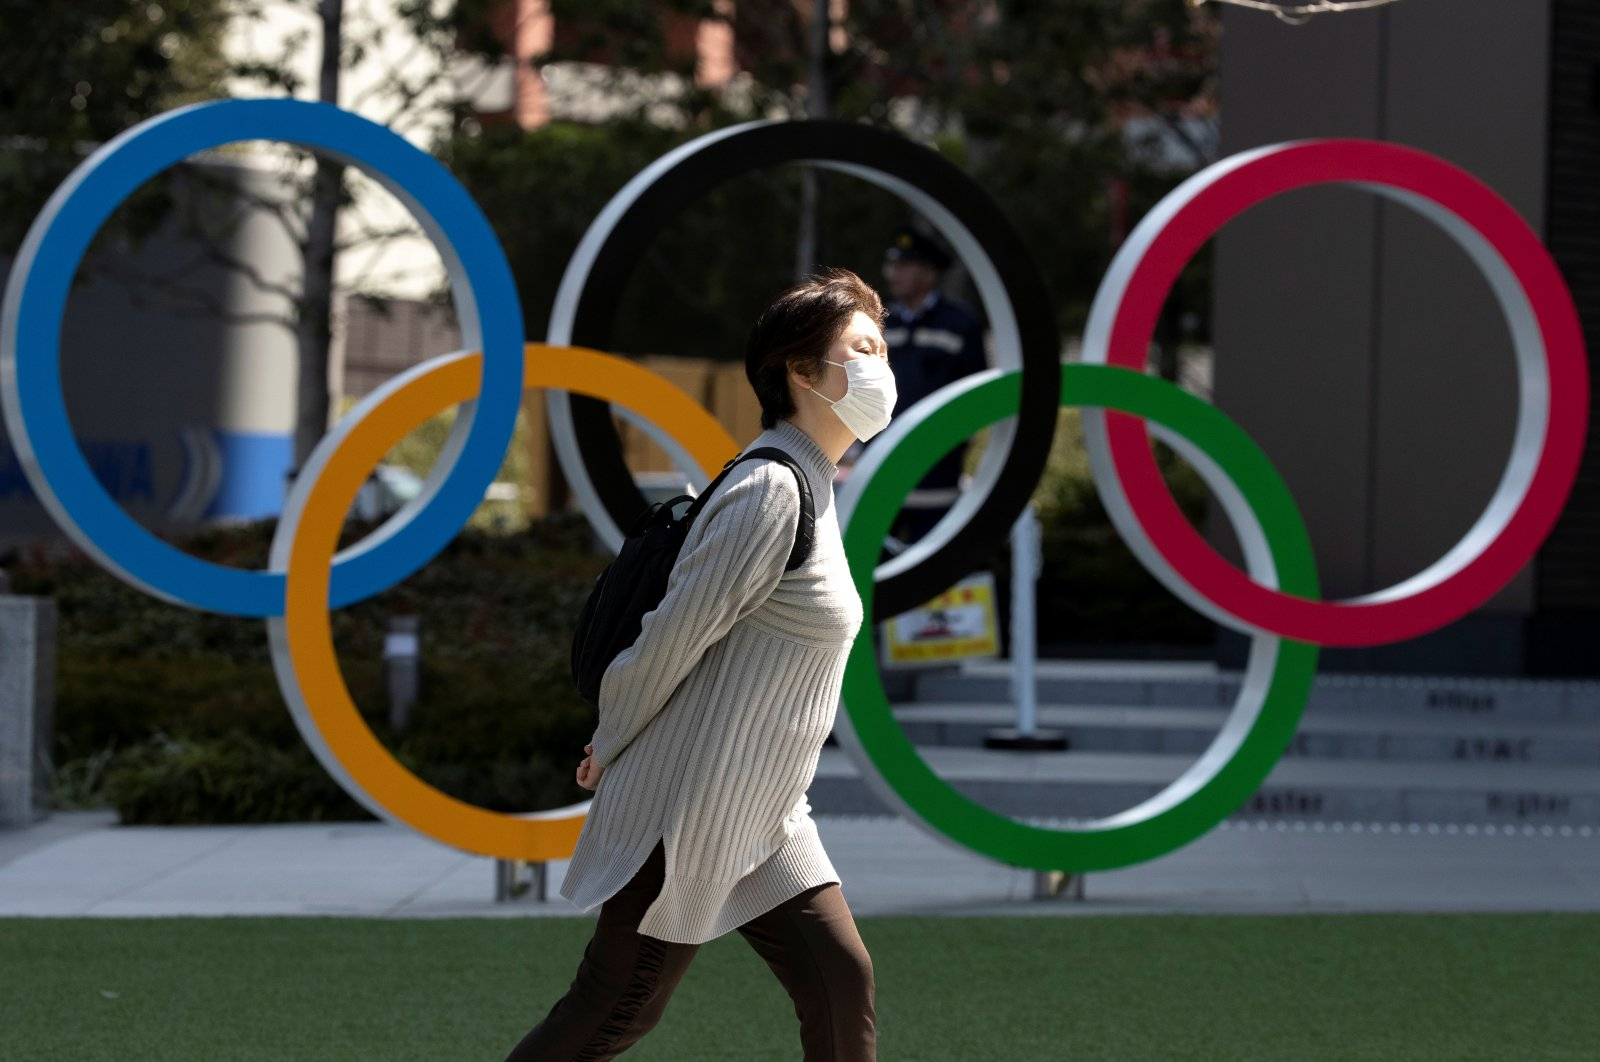 A woman wearing a protective face mask amid the coronavirus outbreak walks past the Olympic rings in front of the Japan Olympics Museum in Tokyo, Japan, March 13, 2020. (Reuters Photo)